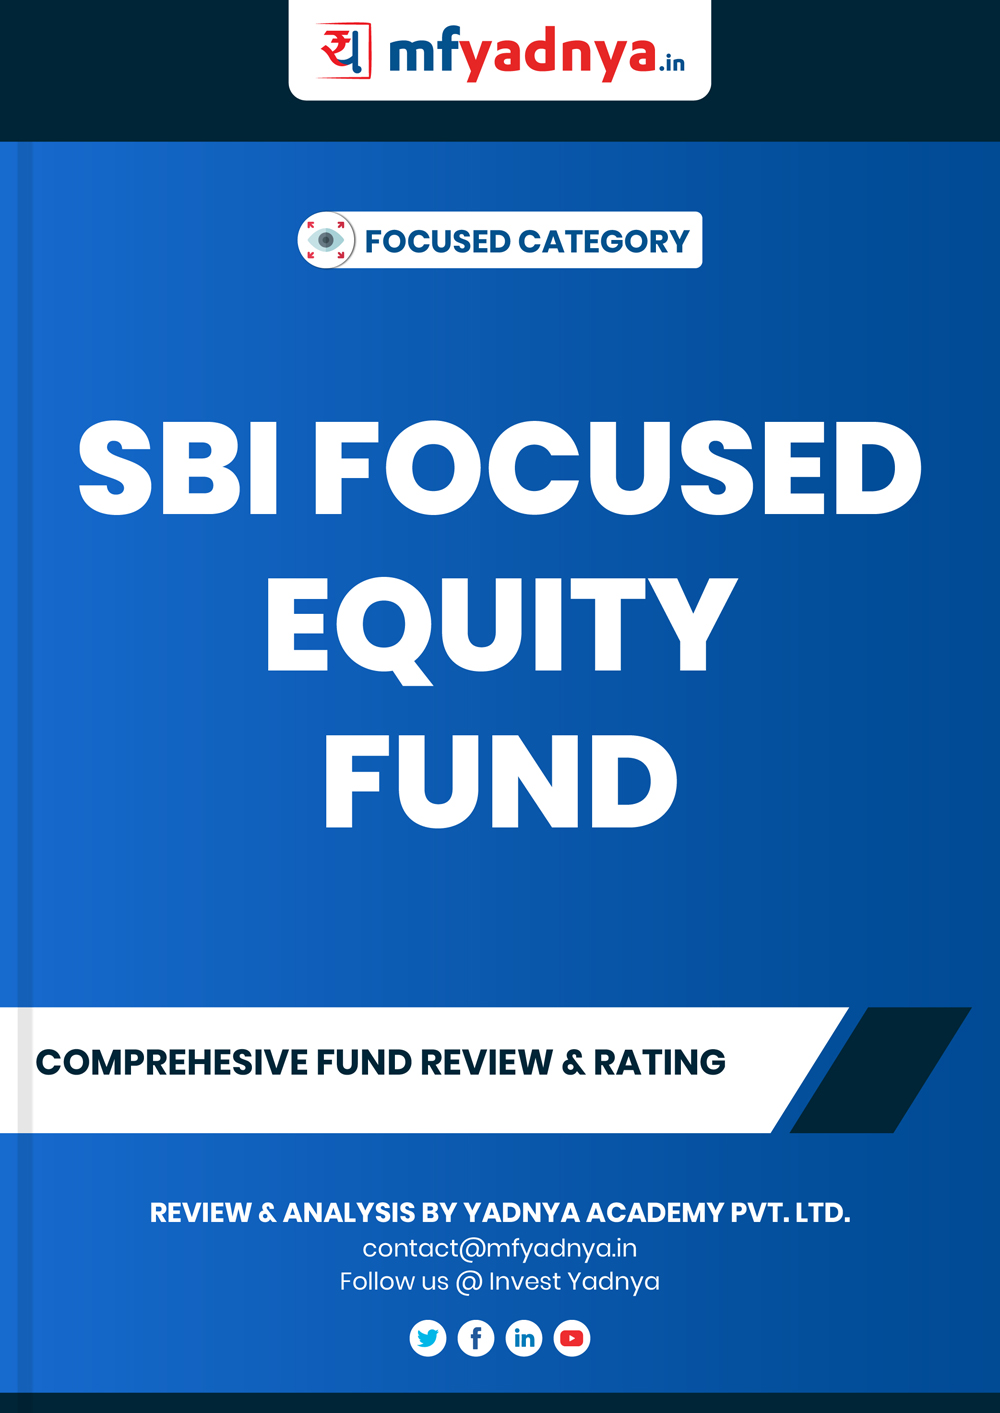 Focused Category Review - SBI Focused Equity Fund. Most Comprehensive and detailed MF review based on Yadnya's proprietary methodology of Green, Yellow & Red Star. Detailed Analysis & Review based on Sept 30th, 2019 data.